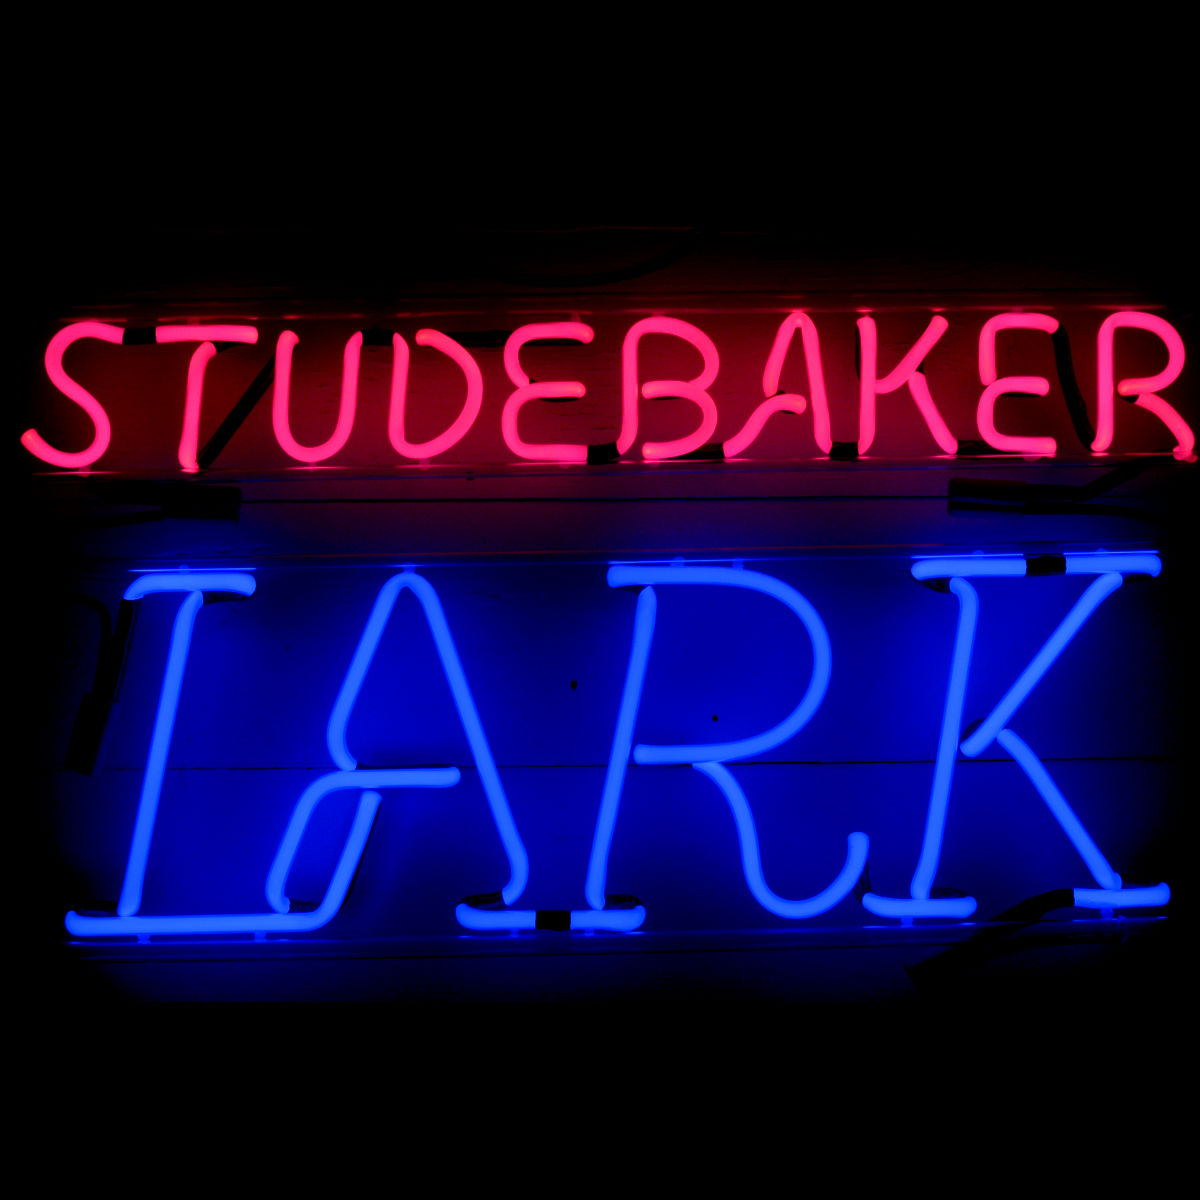 resized Studebaker Lark Neon Sign.jpg